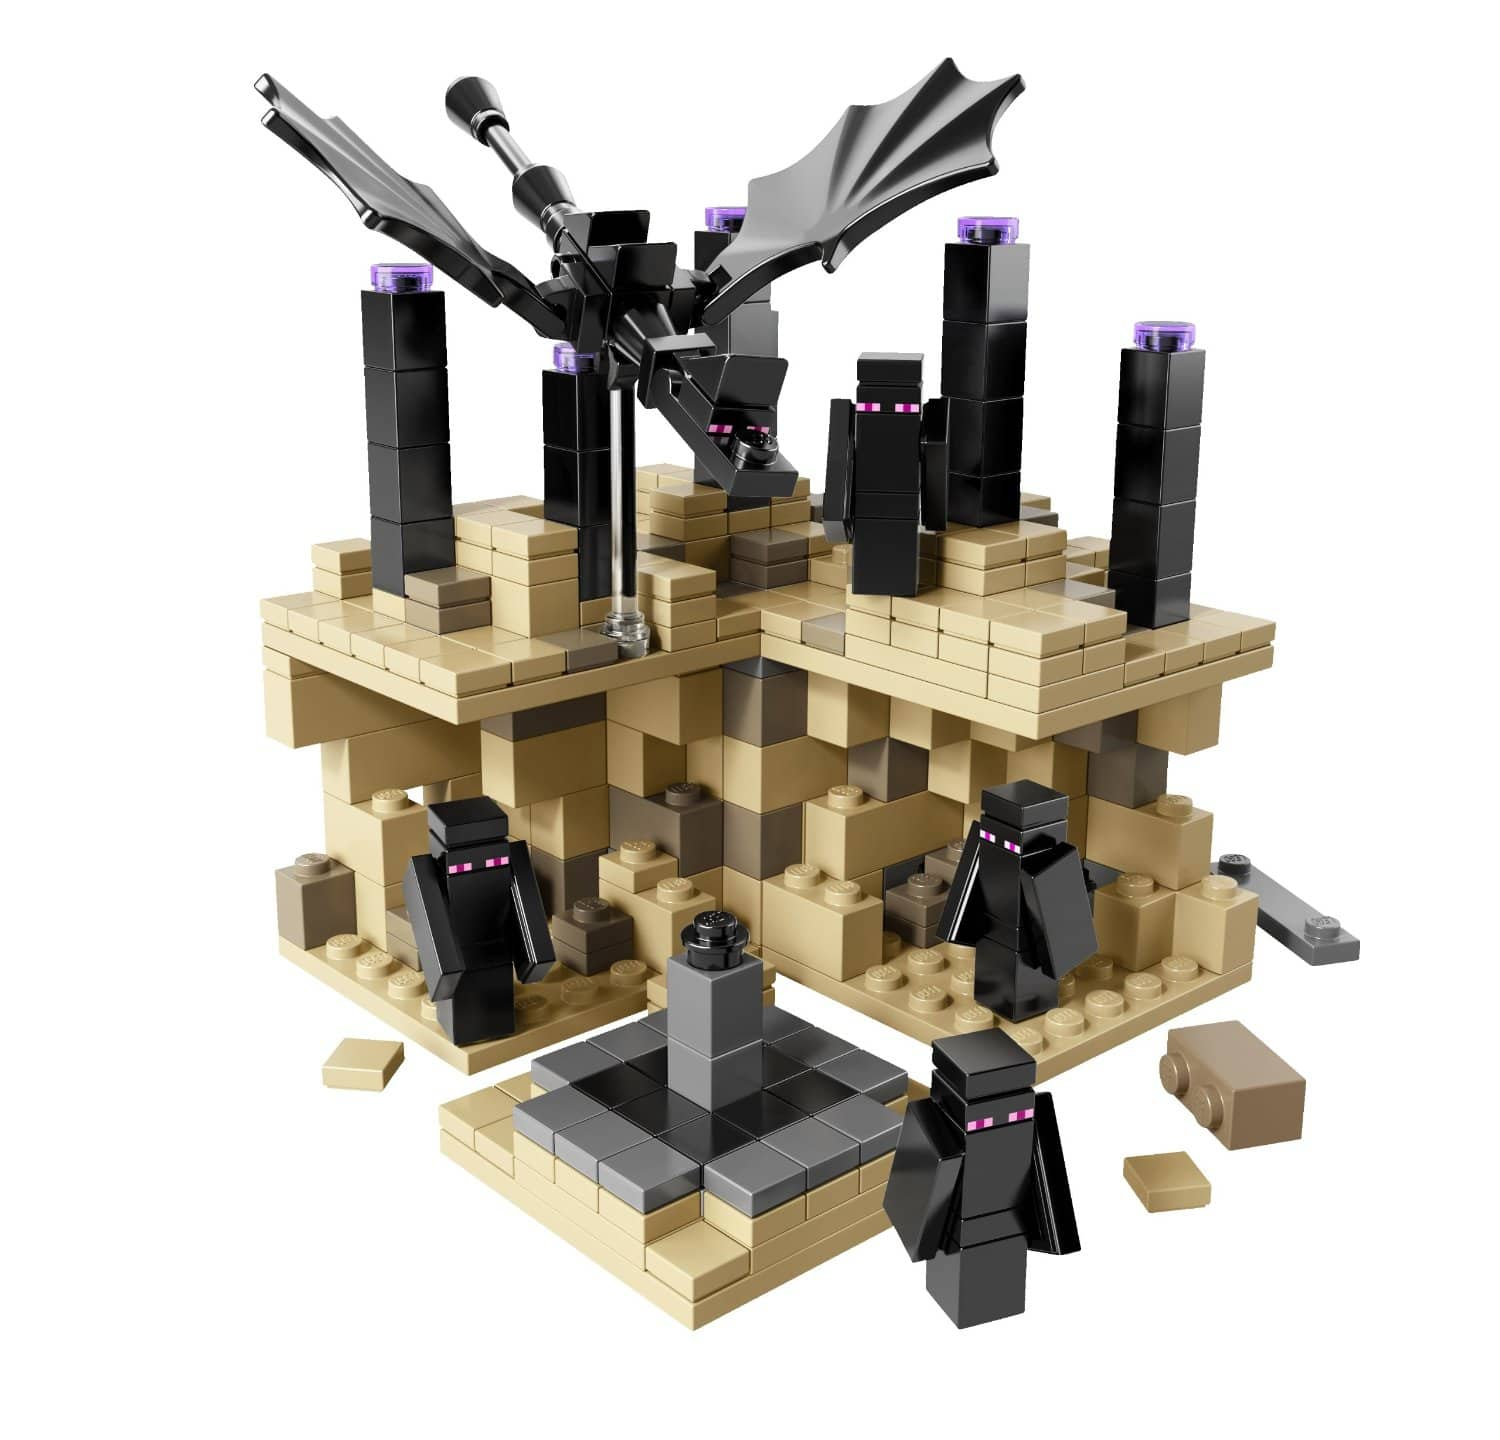 LEGO Minecraft Micro World - The End - $24.99